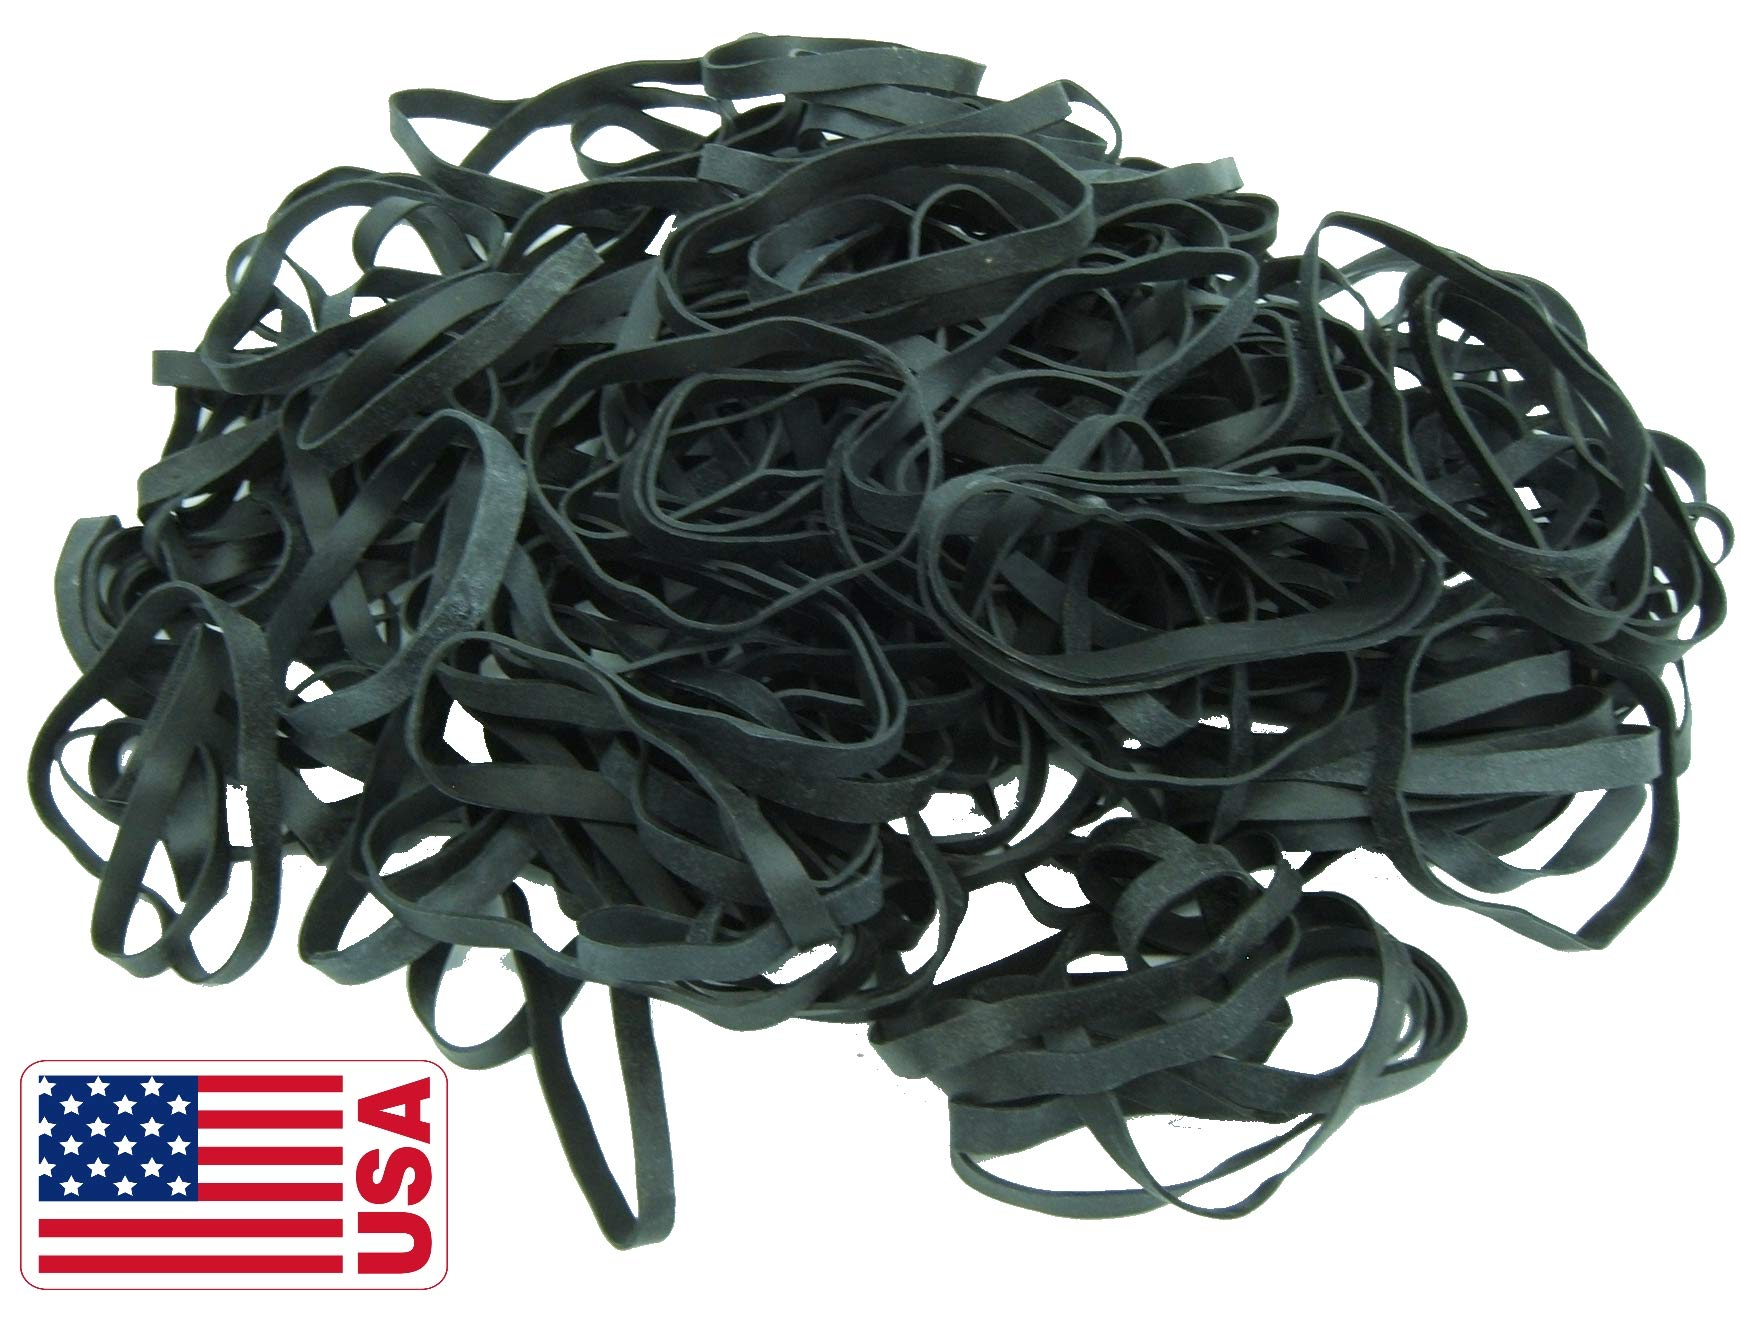 Black High Heat UV Resistant #64 Platinum Crepe Rubber Band Made in USA (3 1/2'' x 1/4'') Large Premium Fishing/Angler 360-390 Count (64-1lb)